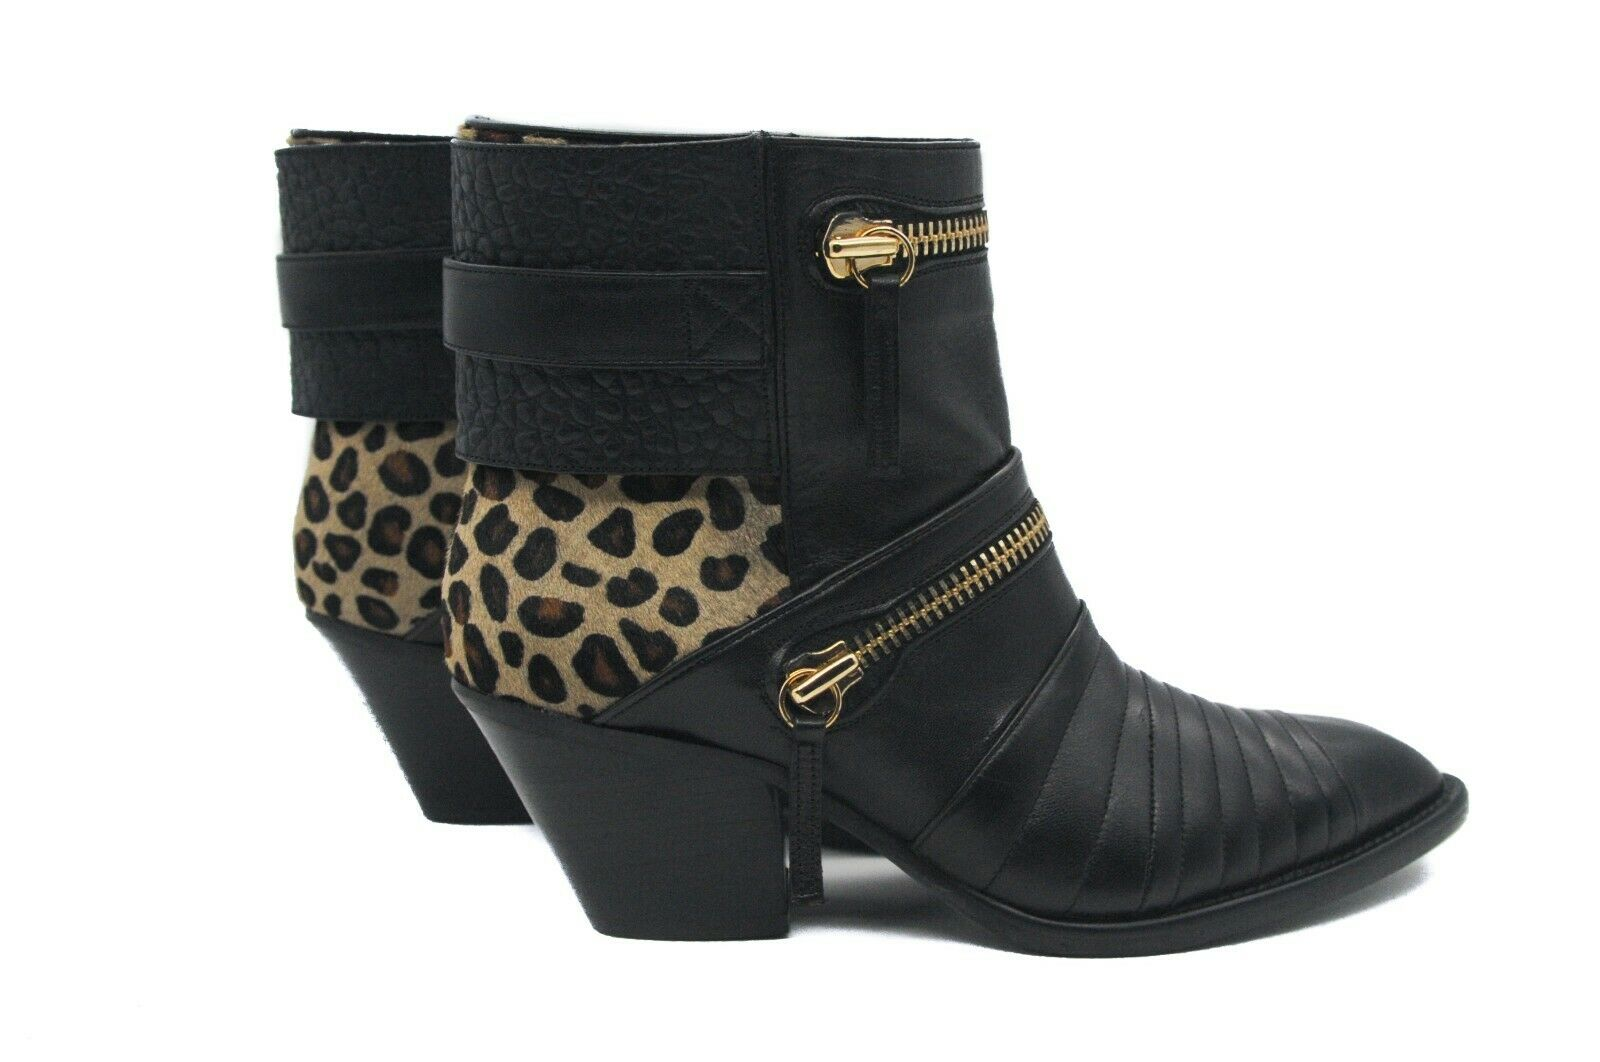 Goody2shoes Ladies' Black Black Black Leather and Leopard Print Ankle Boots with gold Zips 785b06